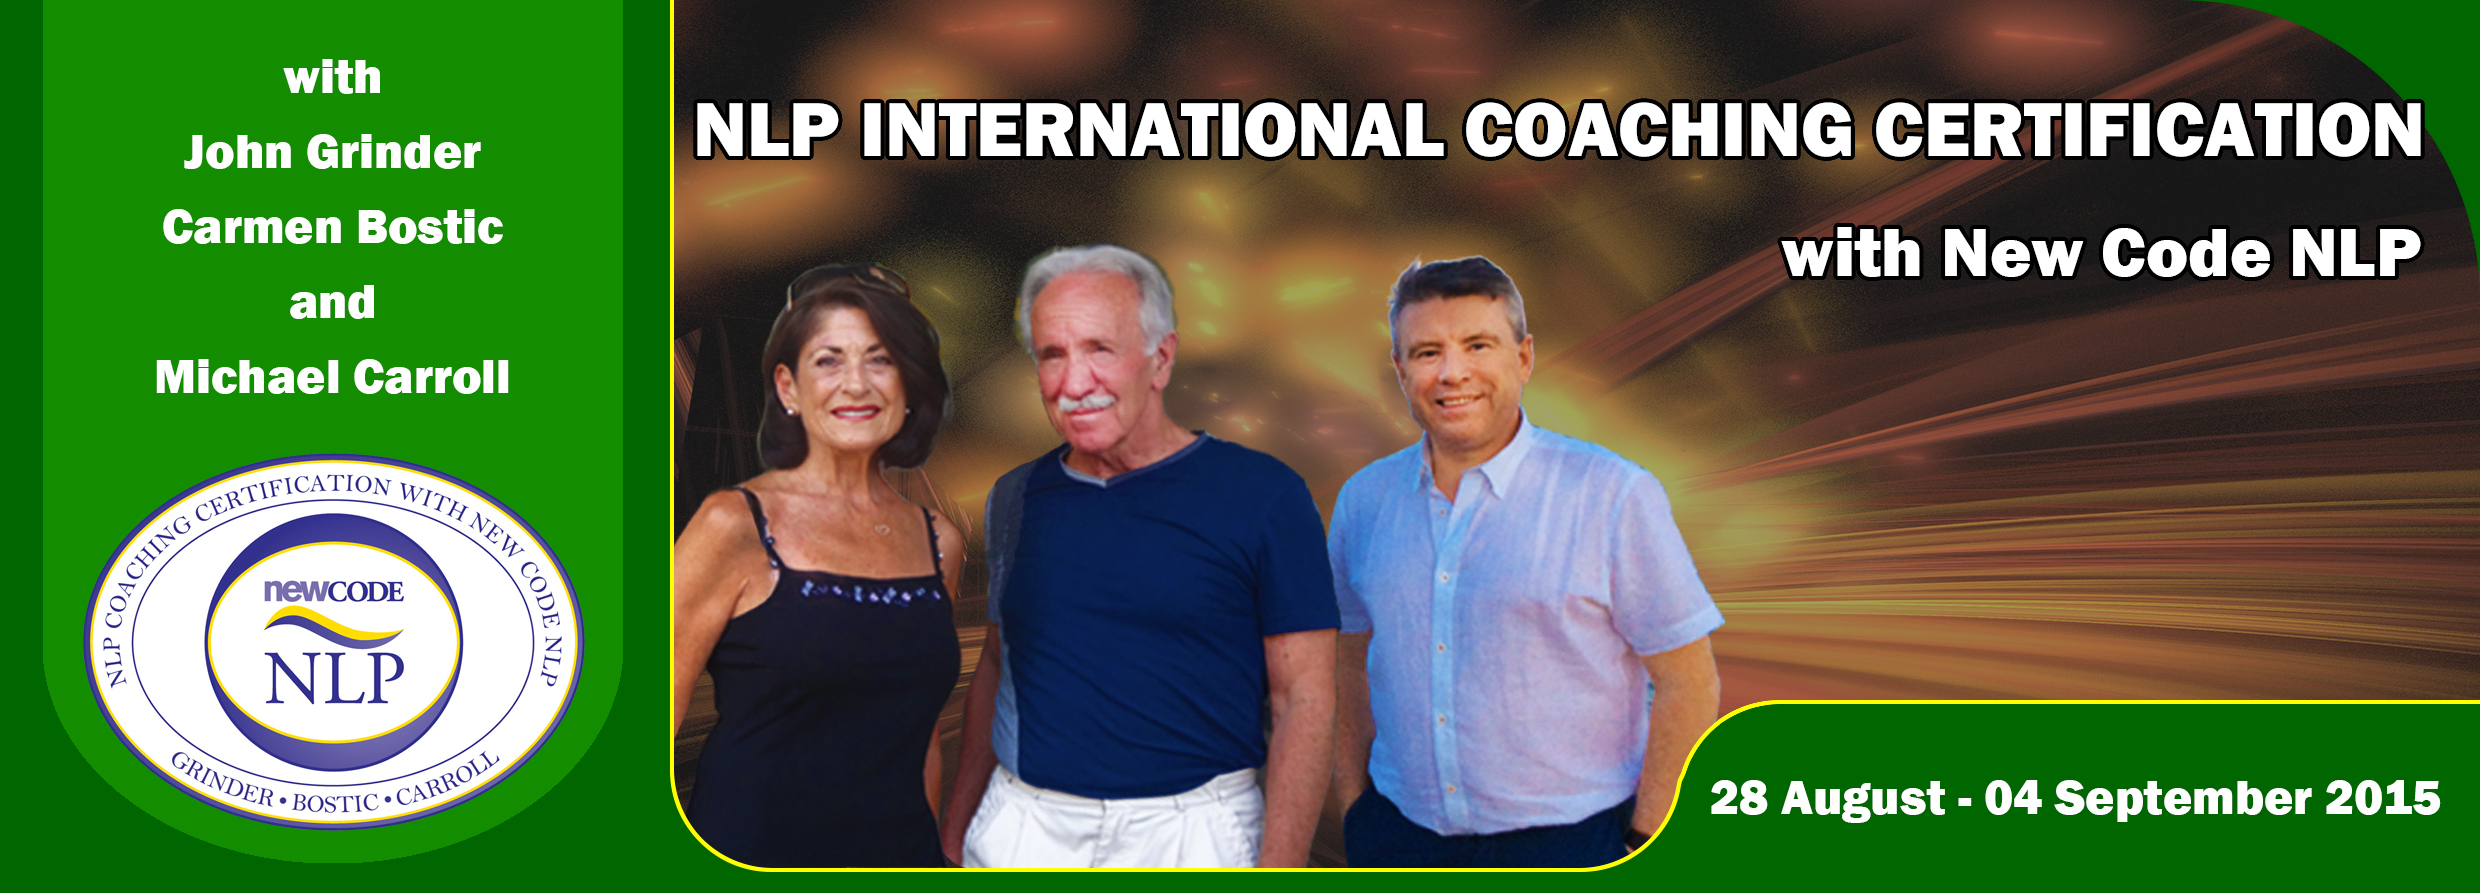 NLP Coaching Certification With New Code NLP